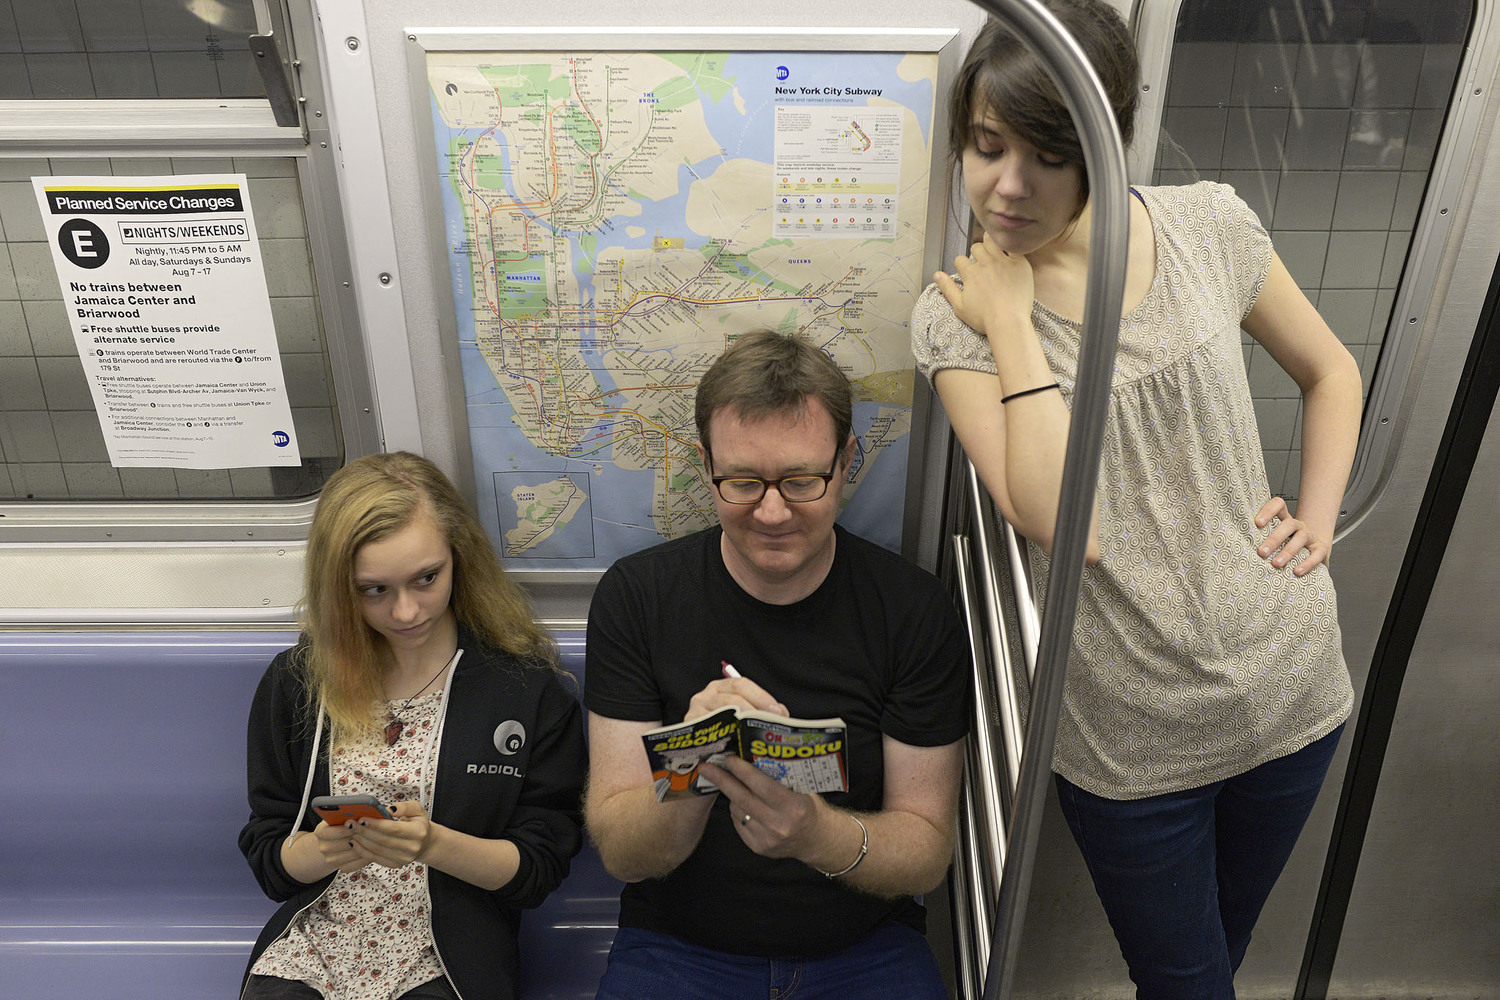 "Man Playing Sudoku on Subway While Women Look Over His Shoulder | You can use this photo for non-commercial purposes if you give credit, under this <a href=""https://creativecommons.org/licenses/by-nc/3.0/us/"" rel=""nofollow"">Creative Commons license</a>. For-profit media organizations also may use this, but as editorial content only (as illustrations for stories, for example, but not as advertising). Credit must read: Richard Yeh / WNYC  We'd love to know if you're using this photo - send us an email (jkeefe@wnyc.org)!"